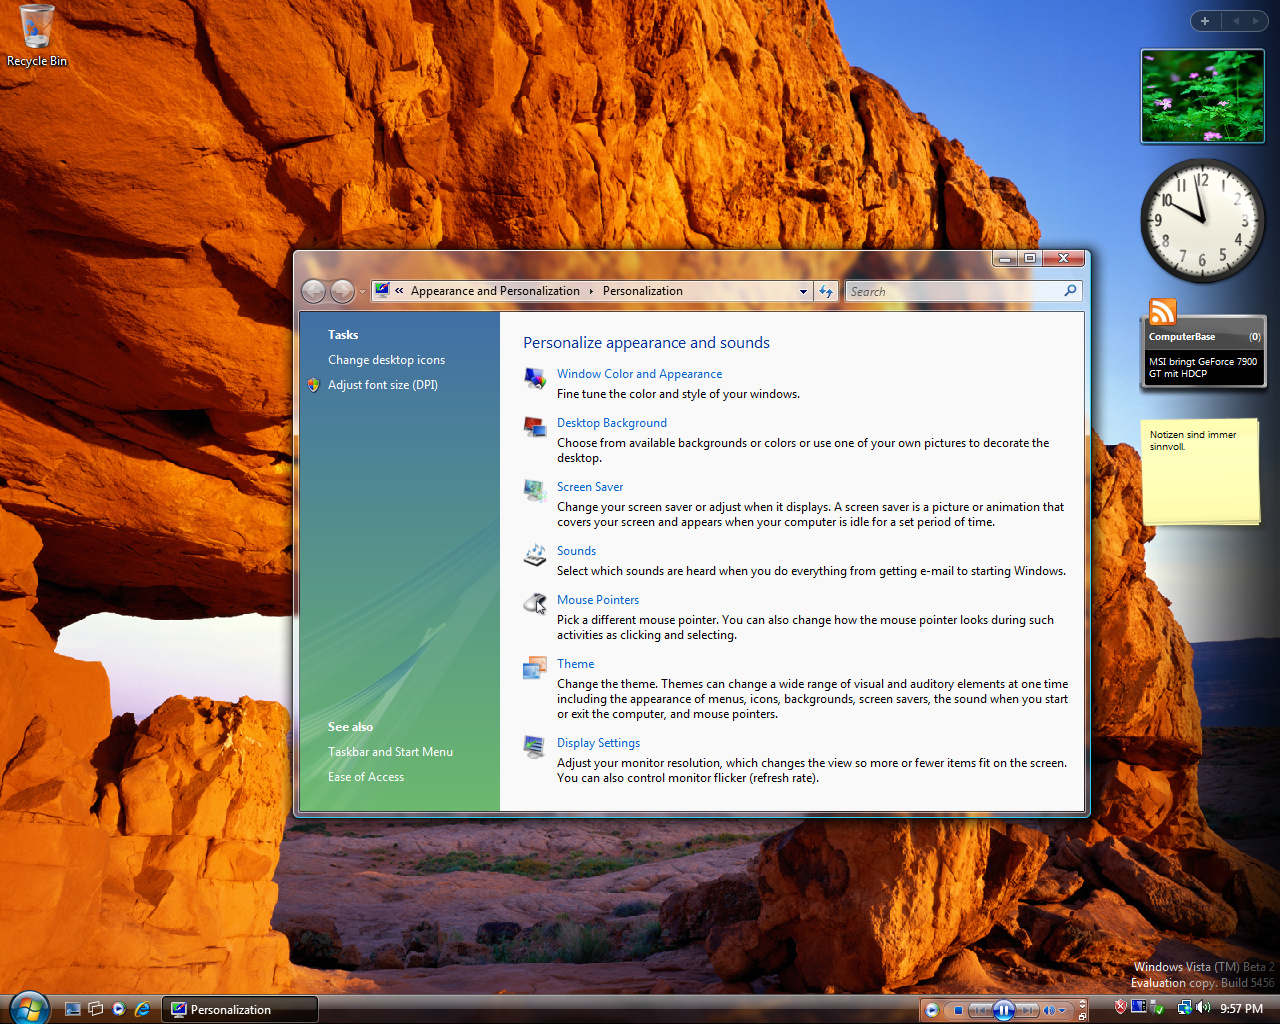 Windows Vista Build 5456 (Post-Beta 2) - Neue Icons an vielen Stellen